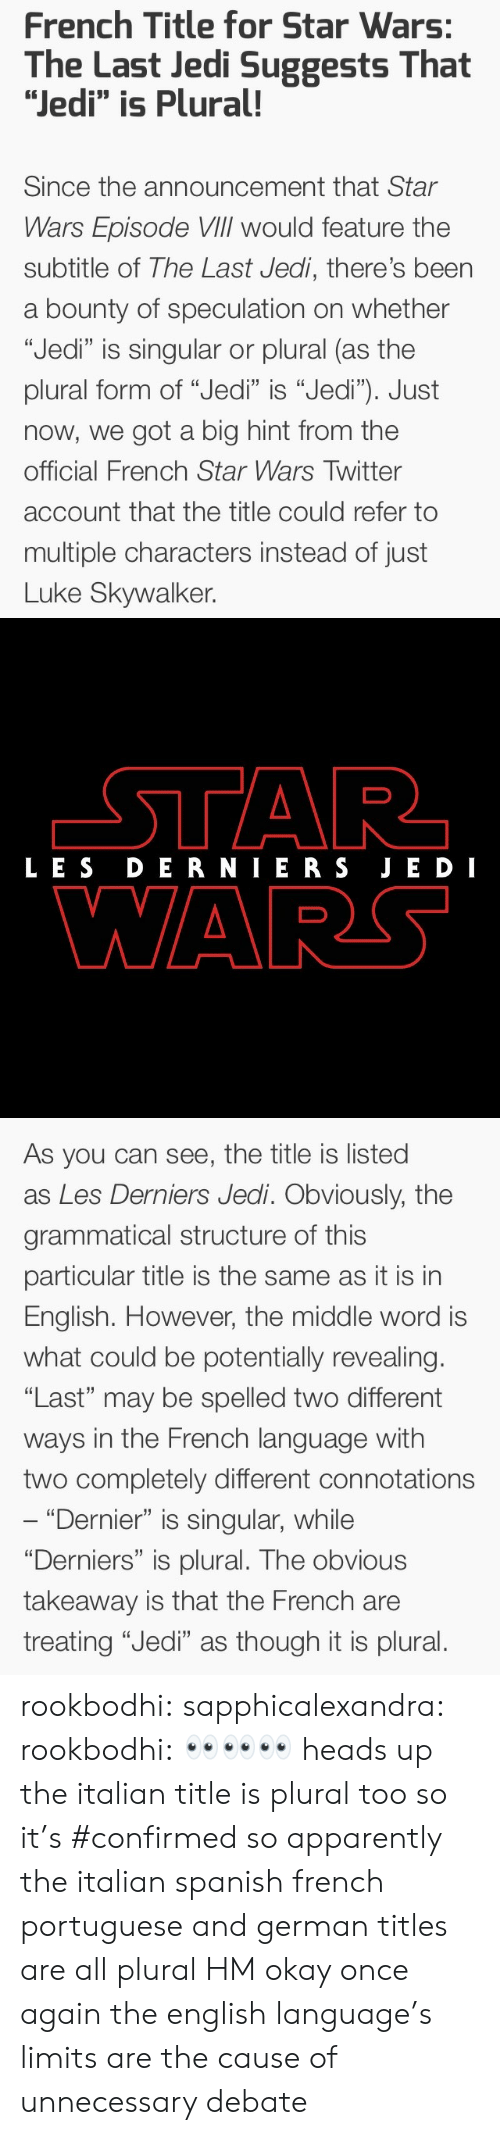 "Subtitle: French Title for Star Wars:  The Last Jedi Suggests That  ""Jedi"" is Plural!  Since the announcement that Star  Wars Episode VIlIl would feature the  subtitle of The Last Jedi, there's been  a bounty of speculation on whether  ""Jedi"" is singular or plural (as the  plural form of ""Jedi"" is ""Jedi""). Just  now, we got a big hint from the  official French Star Wars Twitter  account that the title could refer to  multiple characters instead of just  Luke Skywalker.   LES DERNIERS JE DI  WARS   As you can see, the title is listed  as Les Derniers Jedi. Obviously, the  grammatical structure of this  particular title is the same as it is in  English. However, the middle word is  what could be potentially revealing.  ""Last"" may be spelled two different  ways in the French language with  two completely different connotations  ""Dernier"" is singular, while  ""Derniers"" is plural. The obvious  takeaway is that the French are  treating ""Jedi"" as though it is plural. rookbodhi:  sapphicalexandra:  rookbodhi: 👀👀👀 heads up the italian title is plural too so it's #confirmed  so apparently the italian spanish french portuguese and german titles are all plural HM okay once again the english language's limits are the cause of unnecessary debate"